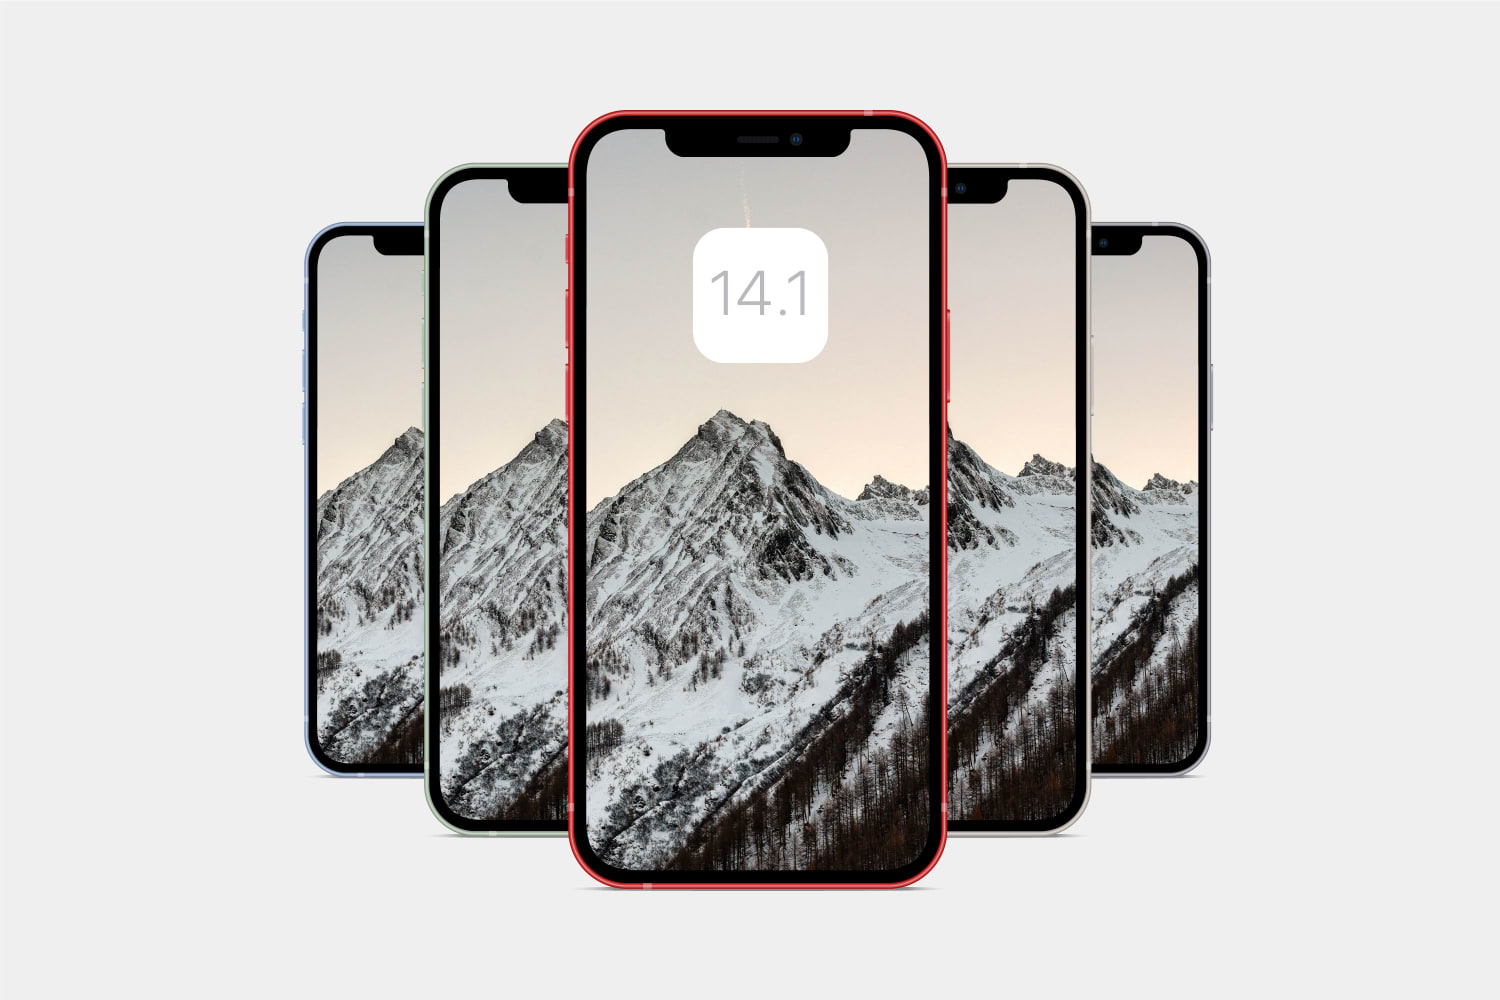 ios-14-1-update-prepares-for-iphone-12-and-homepod-mini-20201021-1